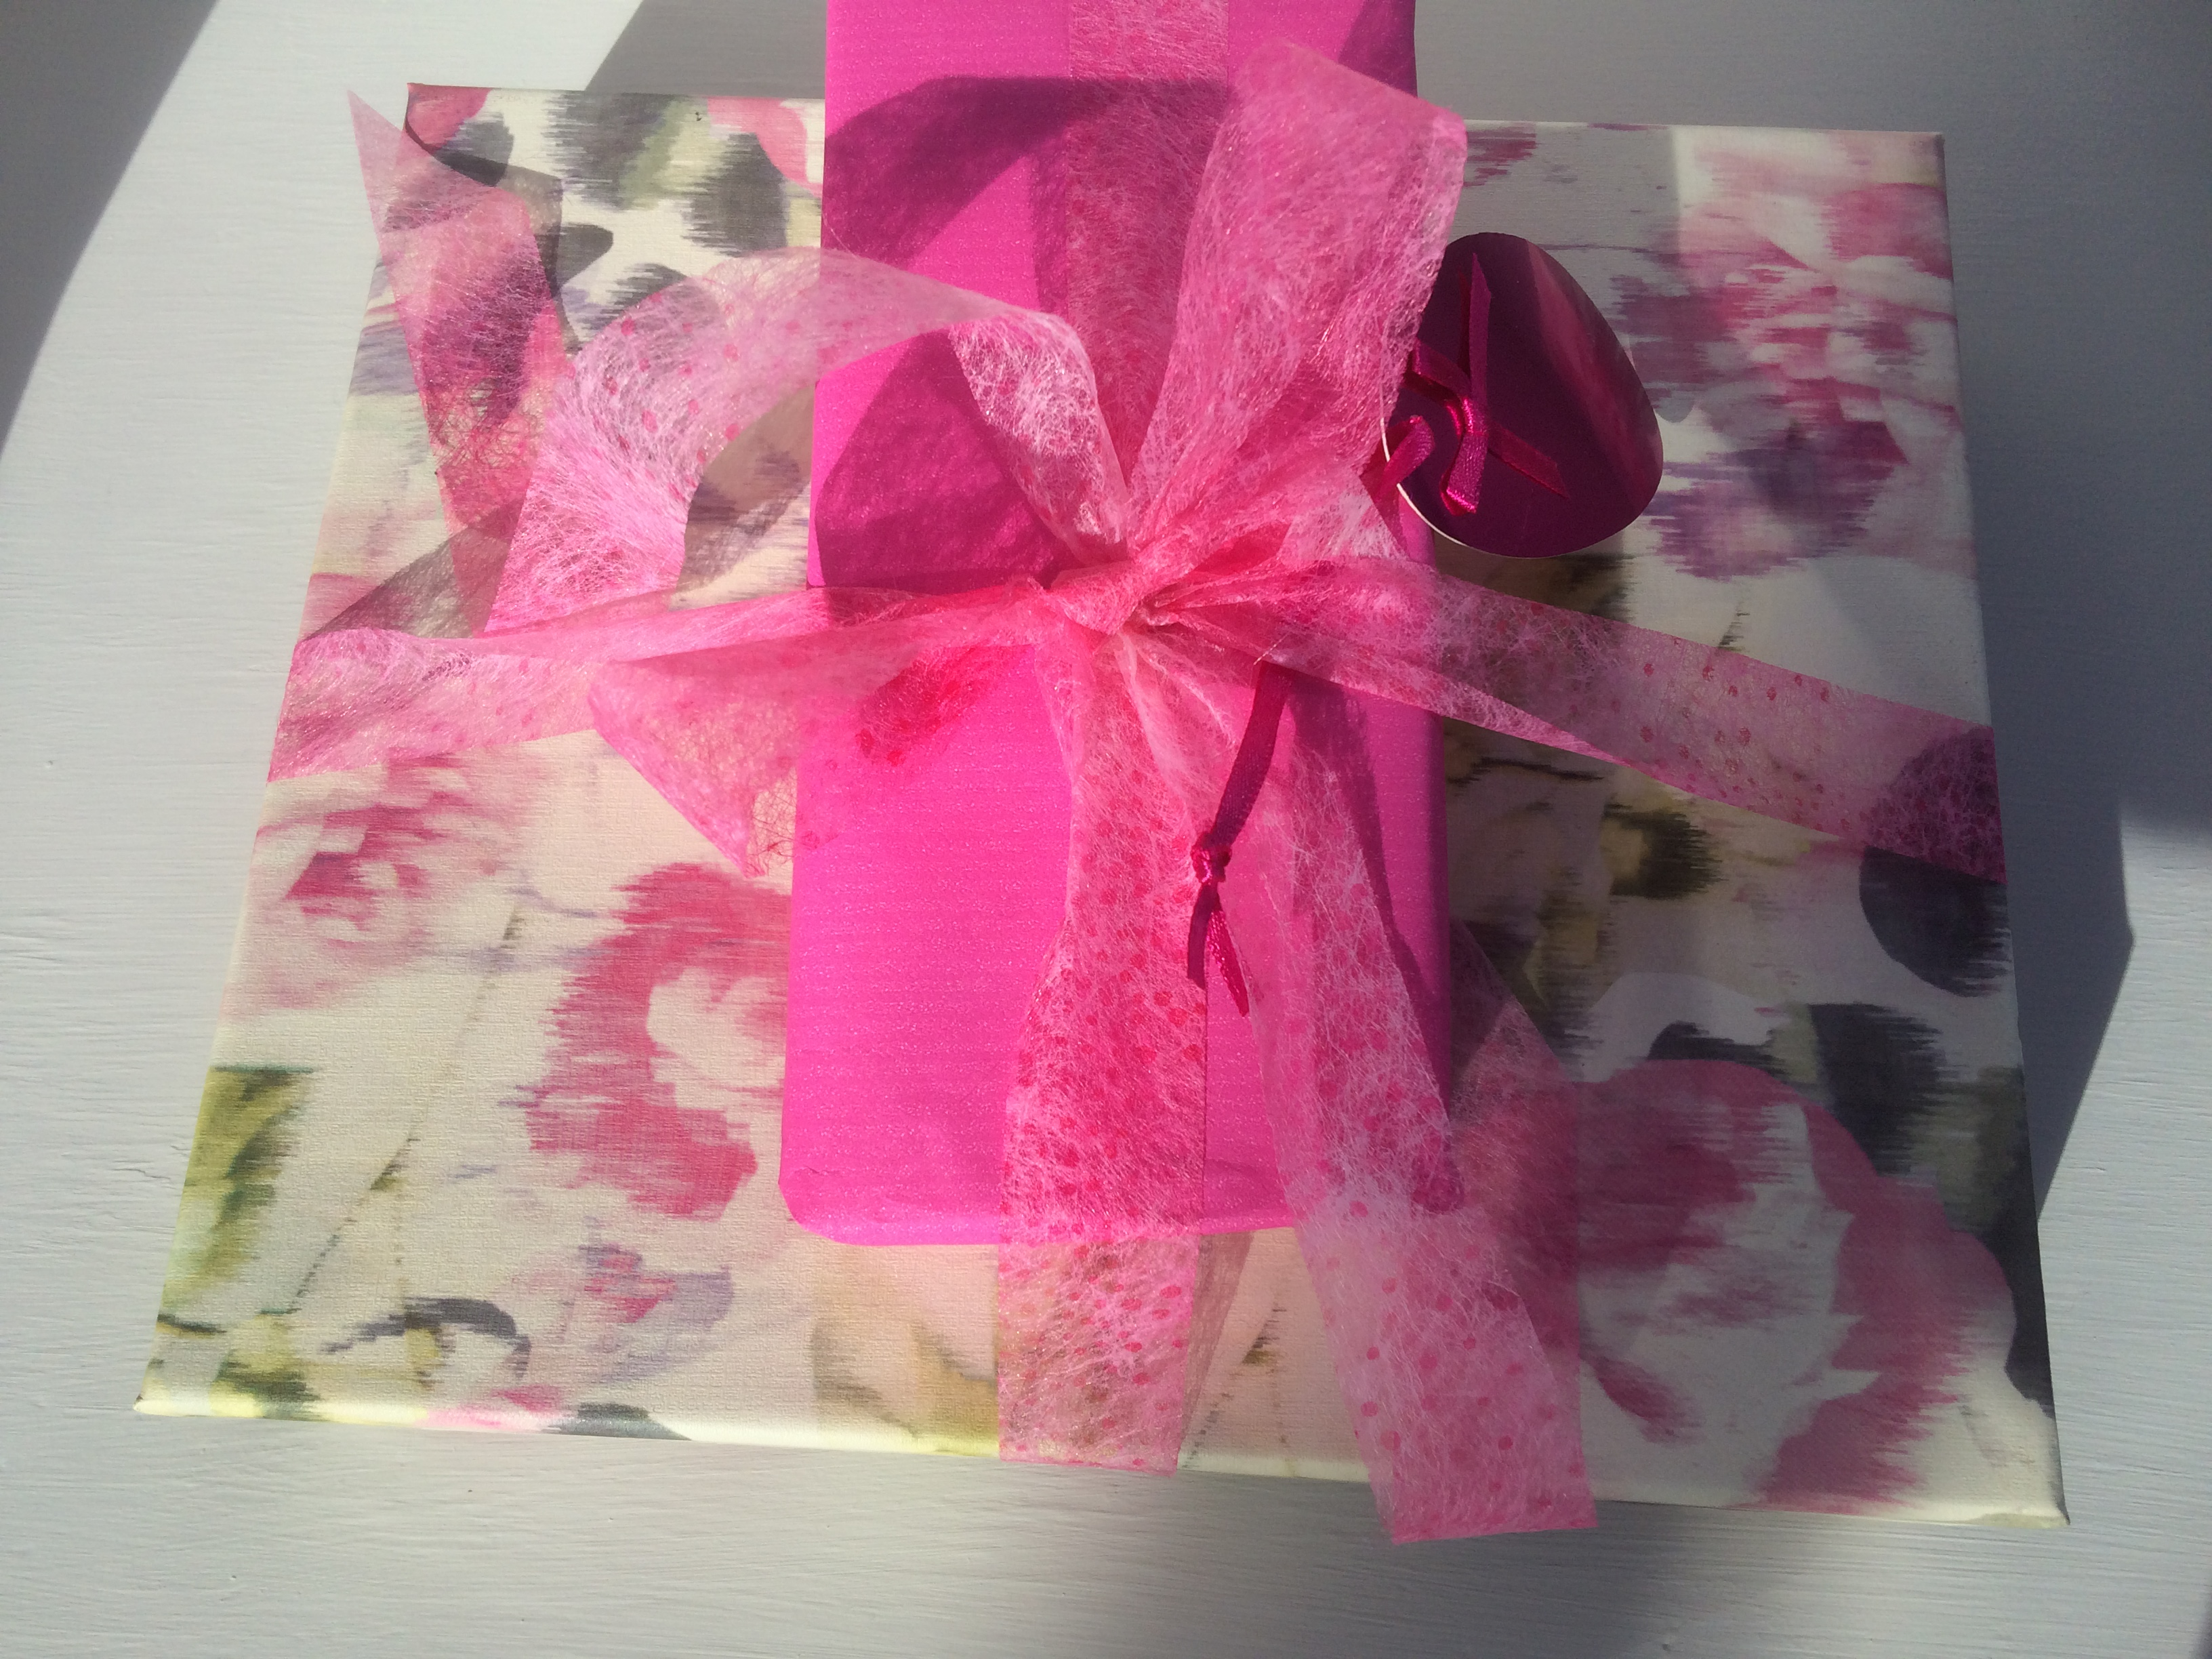 Gift wrapped in pink and white floral paper decorated with a Lutradur bow which has been coloured a vivid pink.